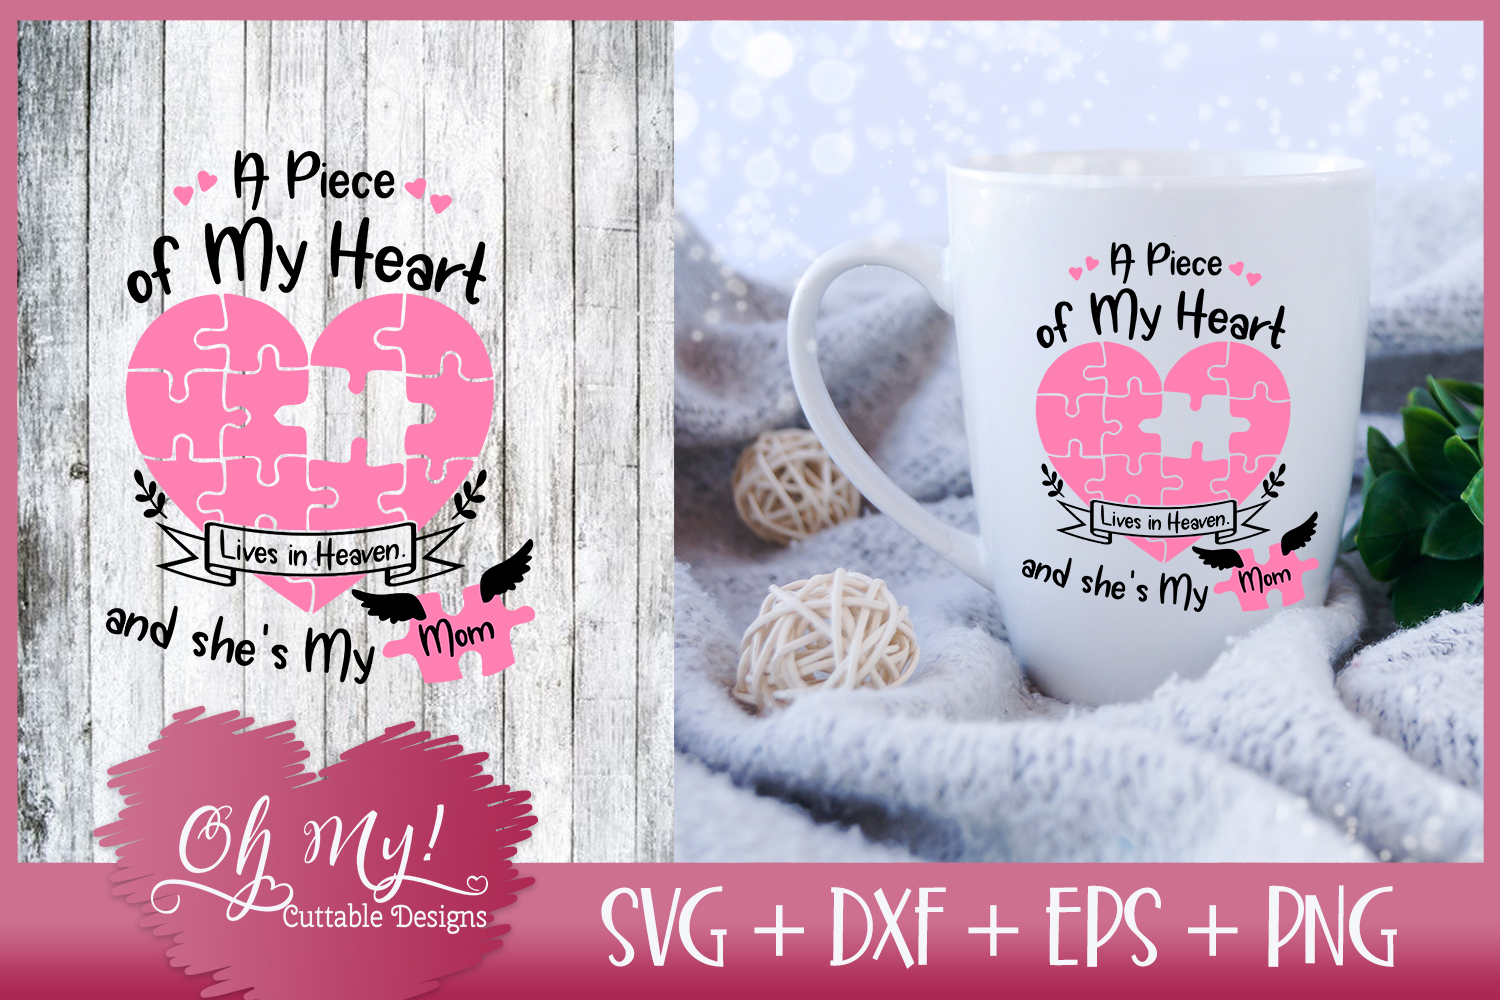 Piece of My Heart Lives In Heaven - Mom - SVG EPS DXF PNG example image 1